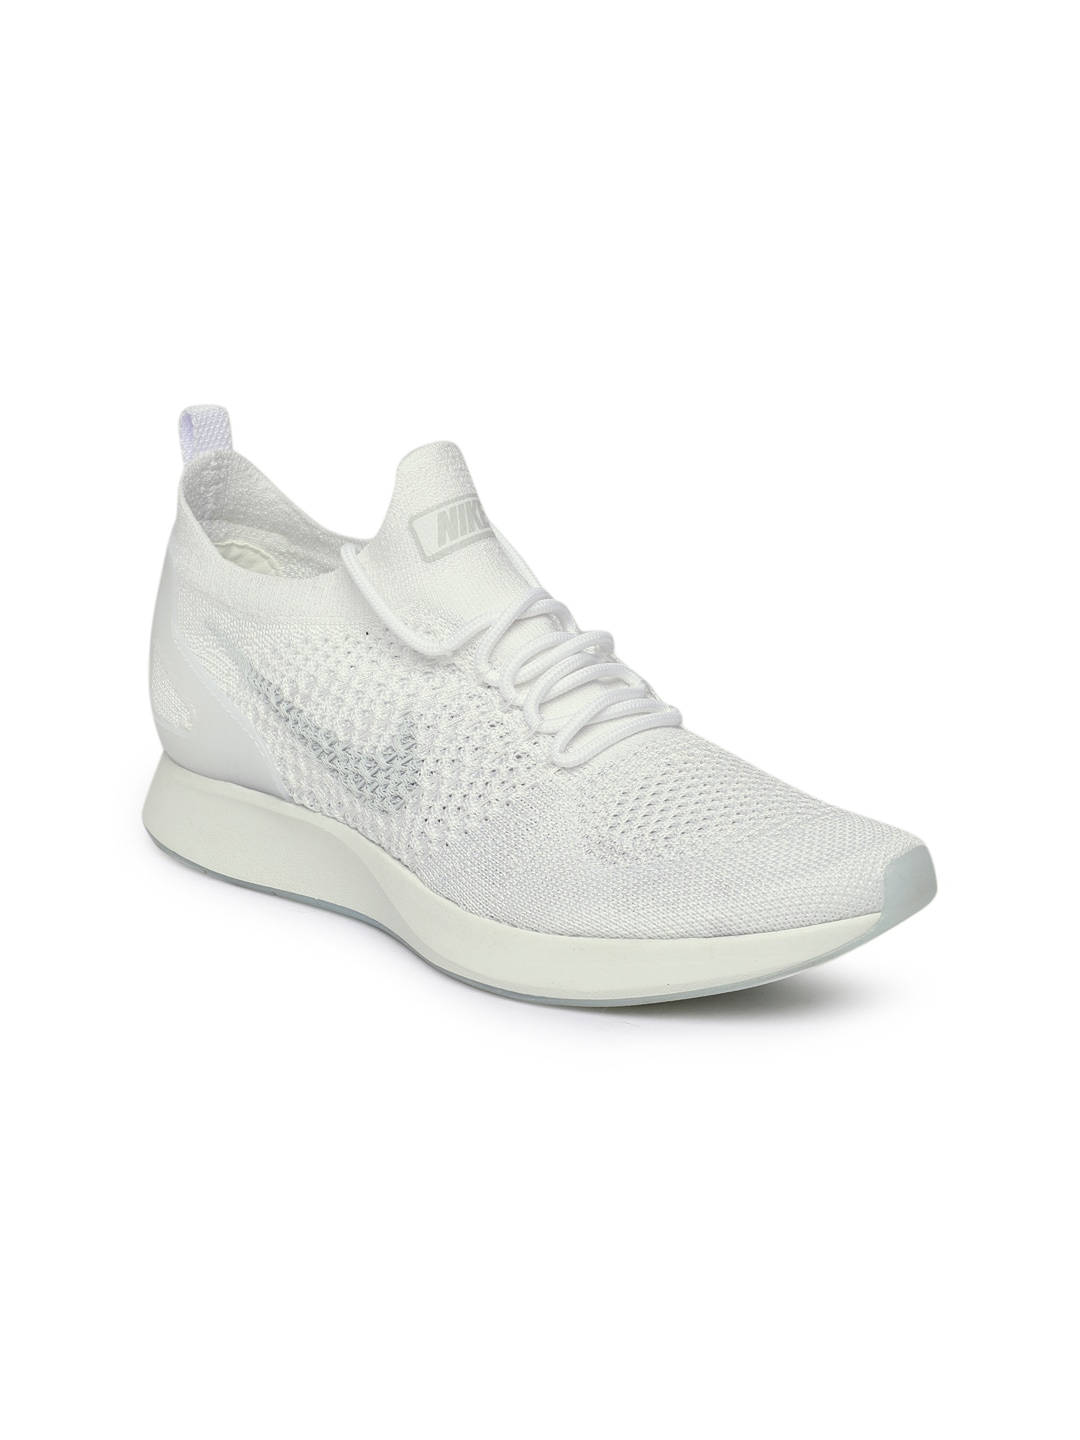 finest selection 821a7 4e508 SIMILAR PRODUCTS. Nike